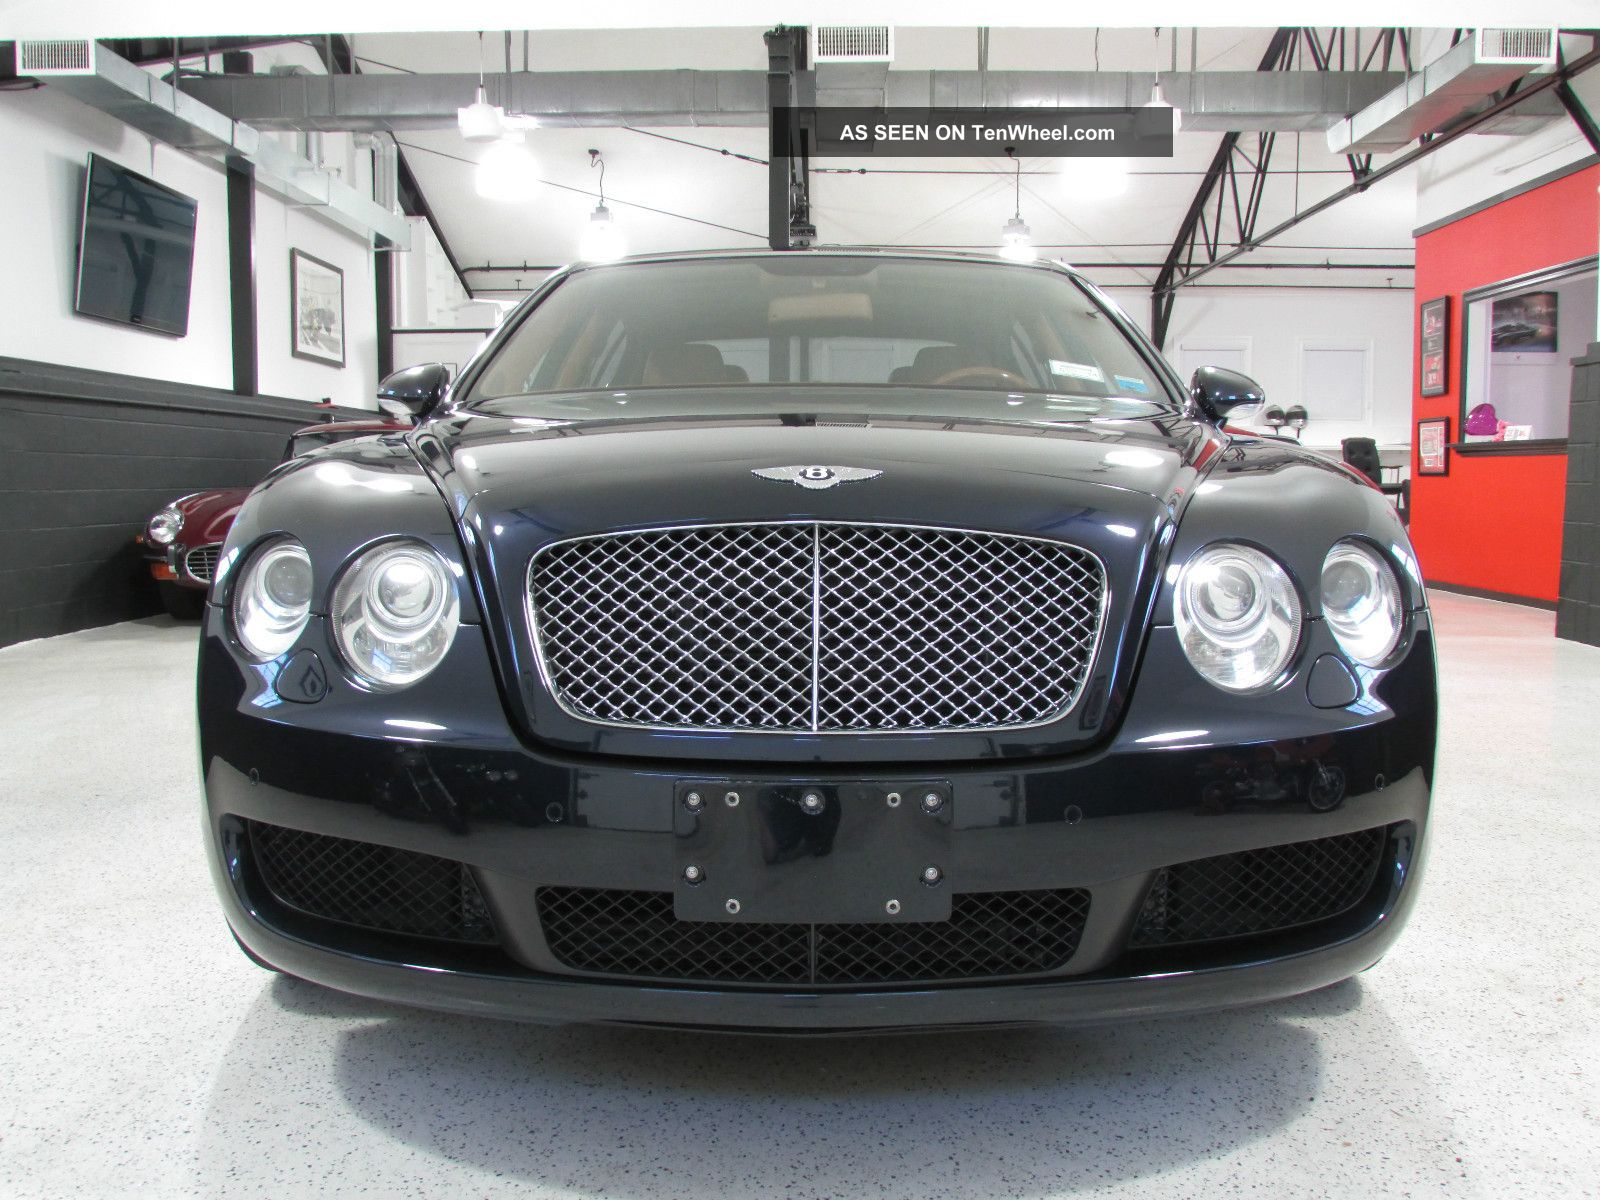 2006 Bentley Flying Spur (w12) 552hp Four Door Sedan Continental Flying Spur photo